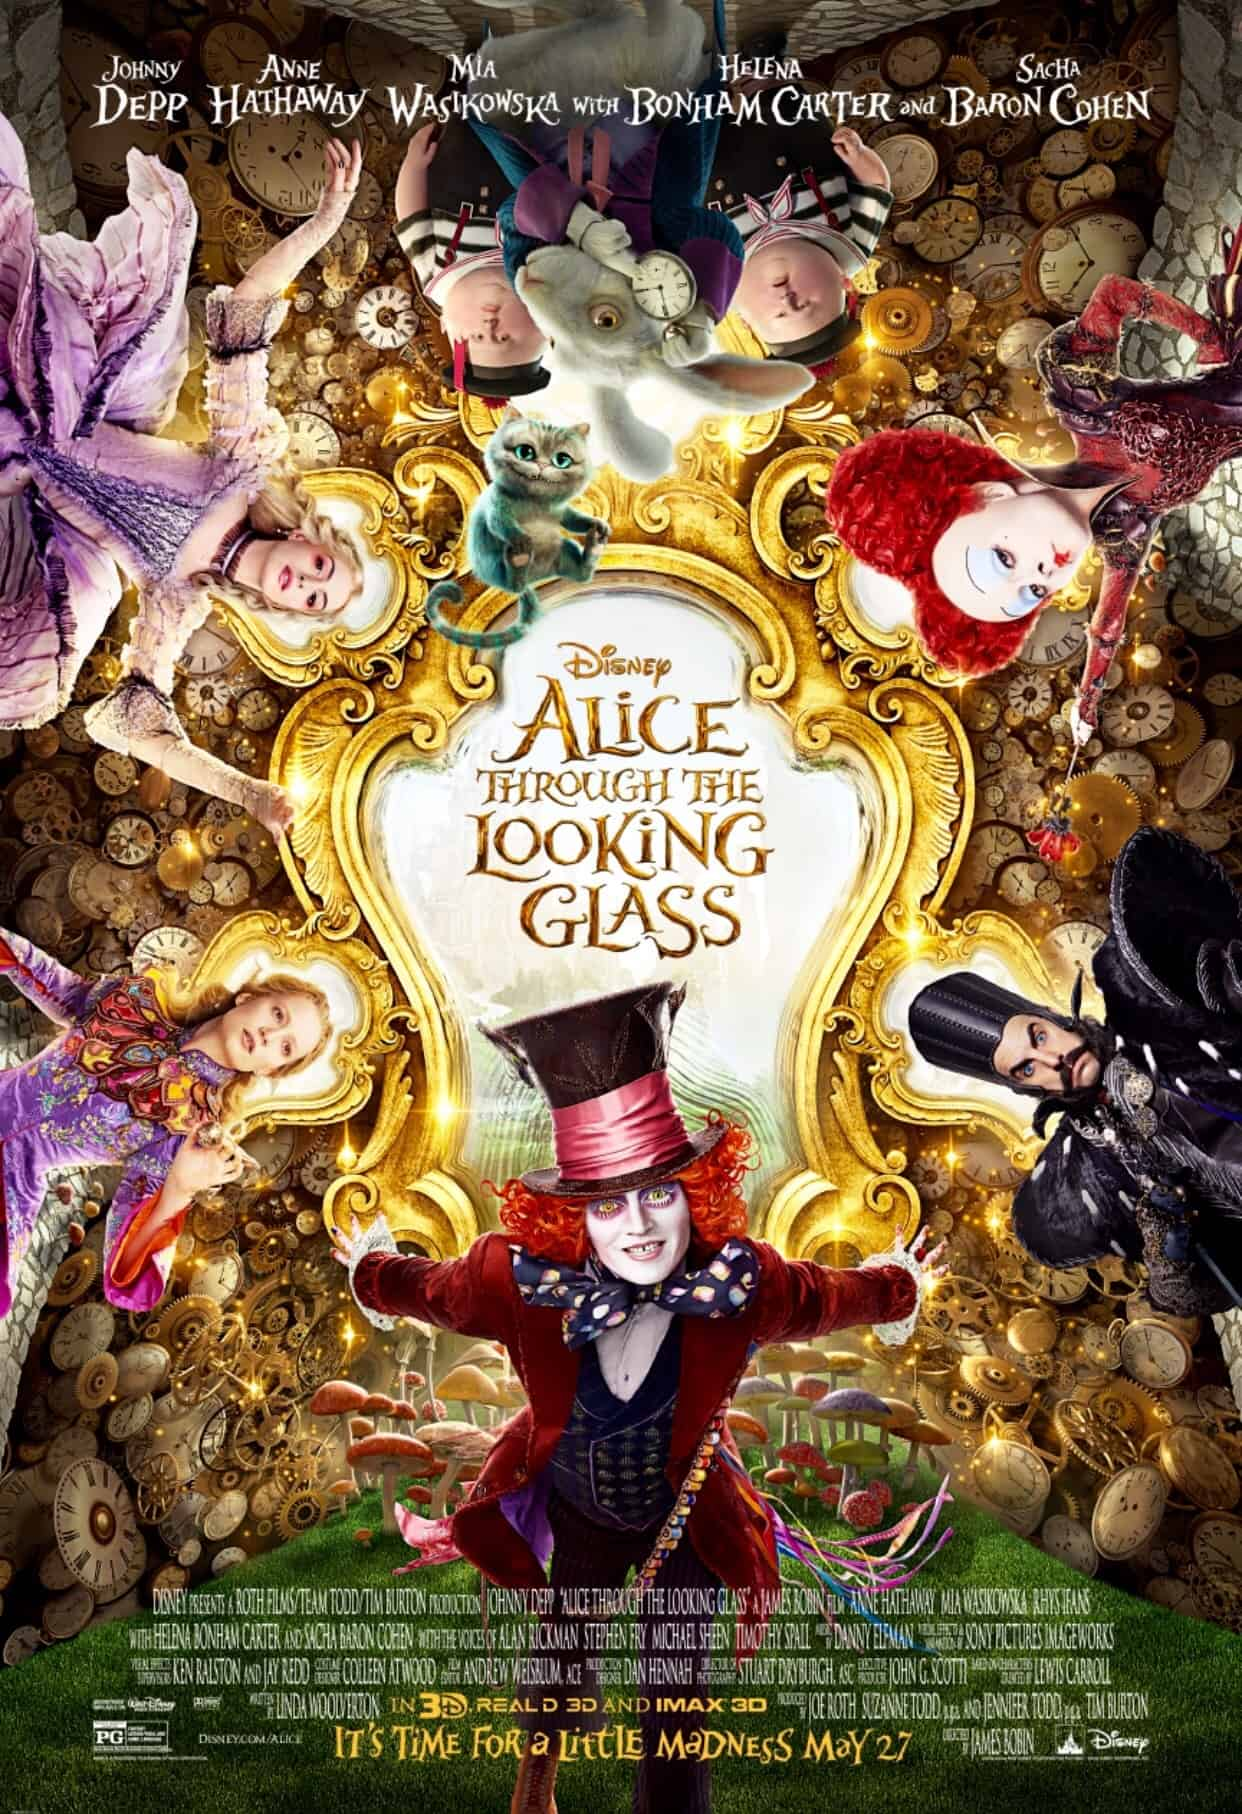 Spring Forward with a New Alice in Wonderland 2 Trailer